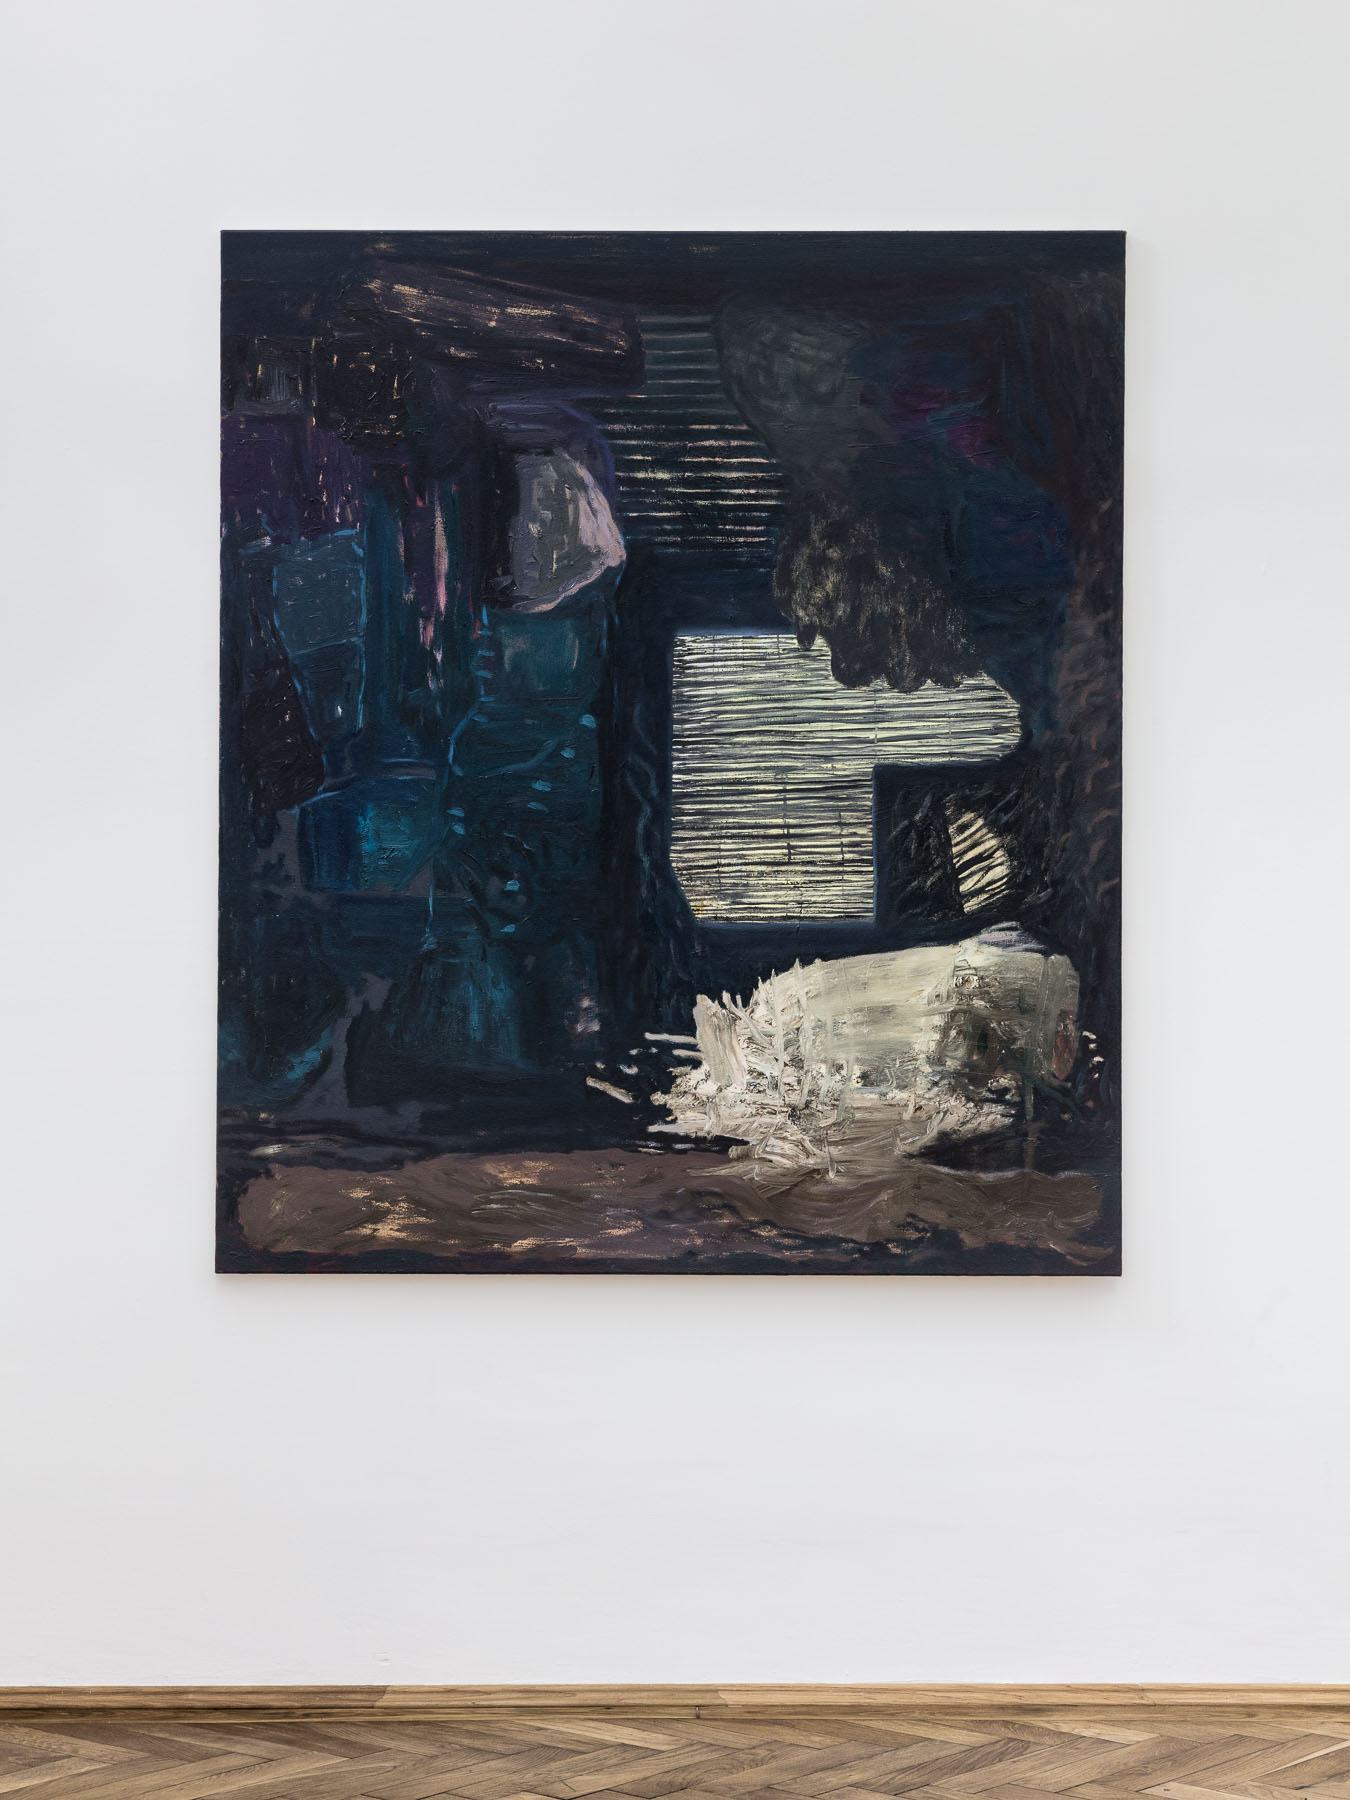 Veronika Hilger, untitled, 2016, oil on canvas, 150 x 130 cm